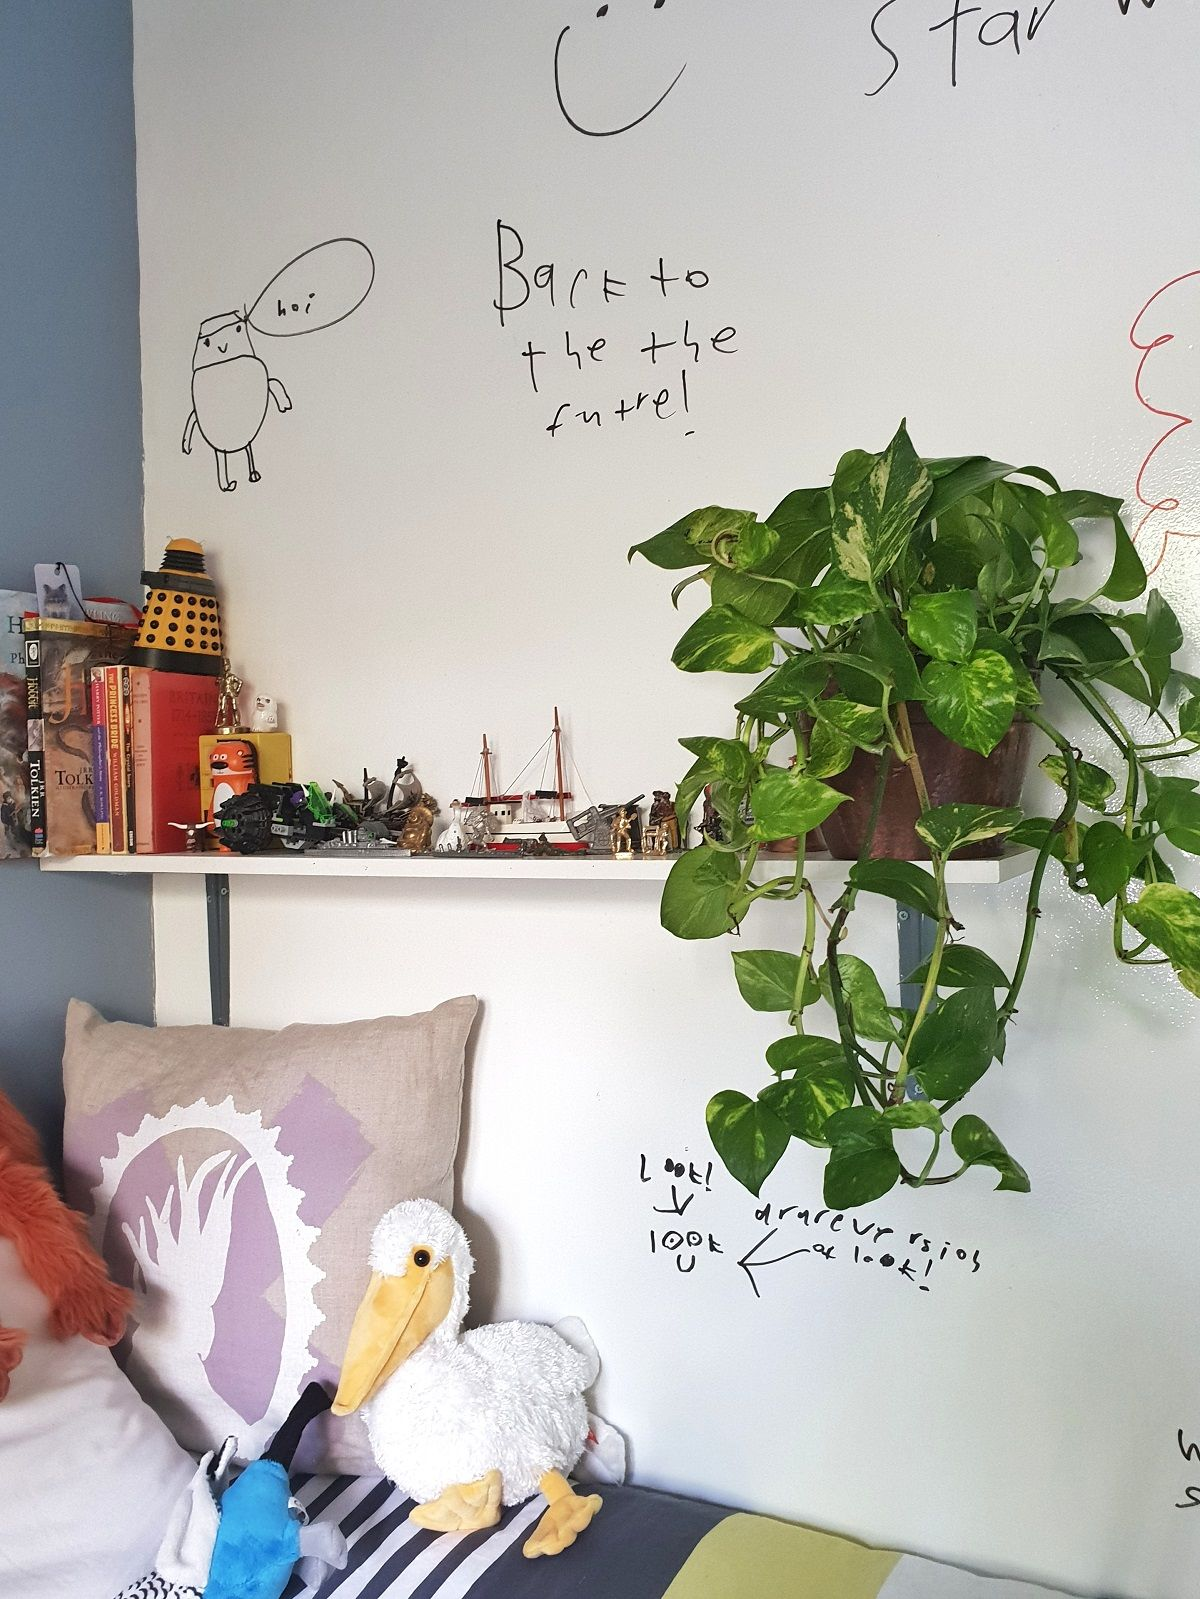 Turn A Wall Into A Whiteboard How To Turn A Wall Into A Whiteboard Using Paint Home Office